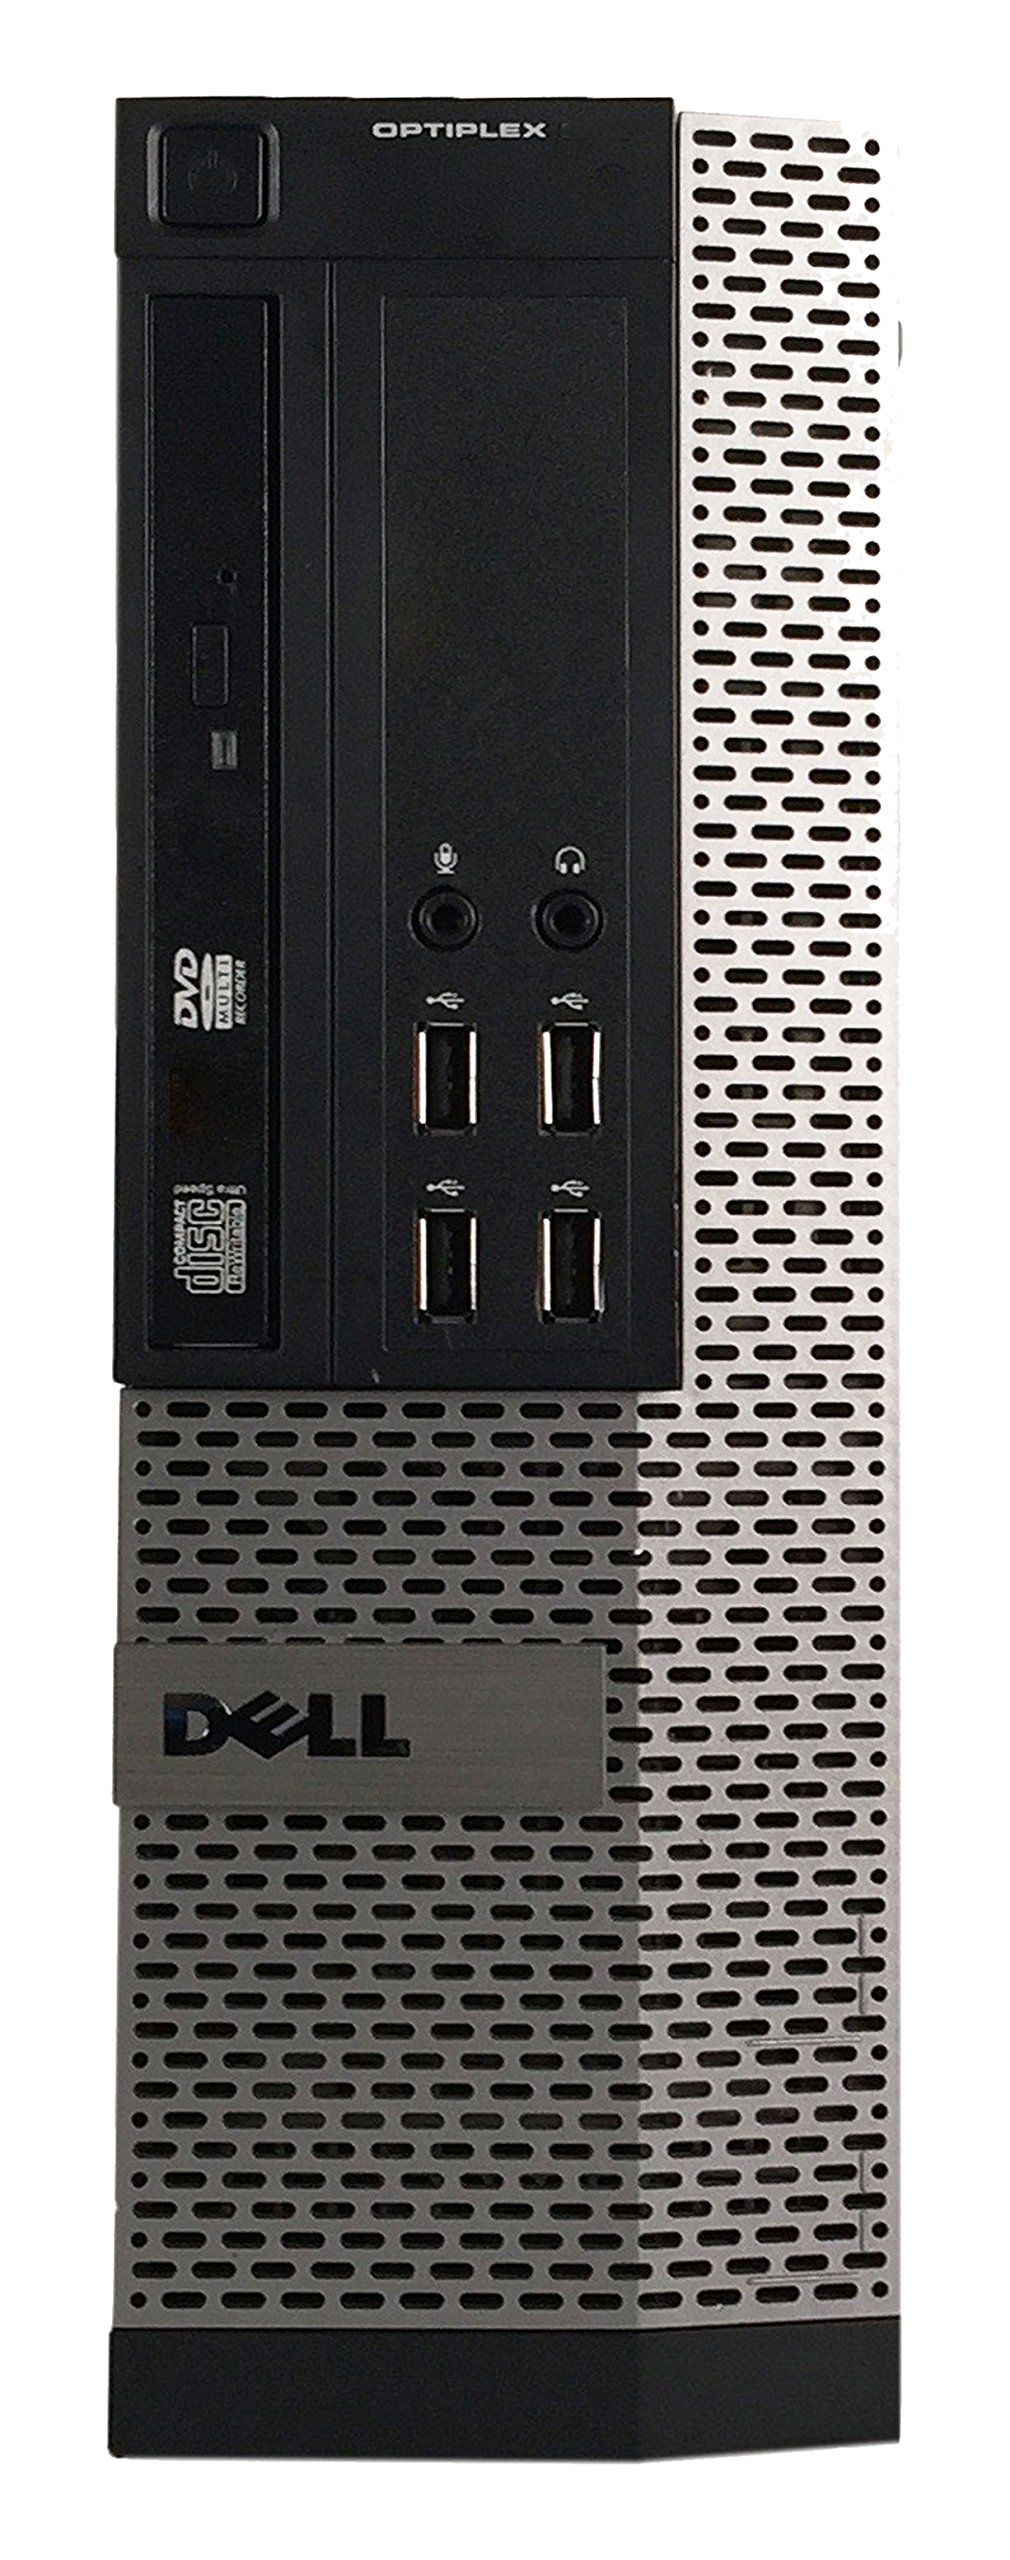 Dell 16VFDEDT1030 790 Small Business High Performance Desktop Computer mini PC, Core i5 2400 3.1G, 8G DDR3, 320G, DVD, Windows 10 Professional, Black,Certified Refurbished product.